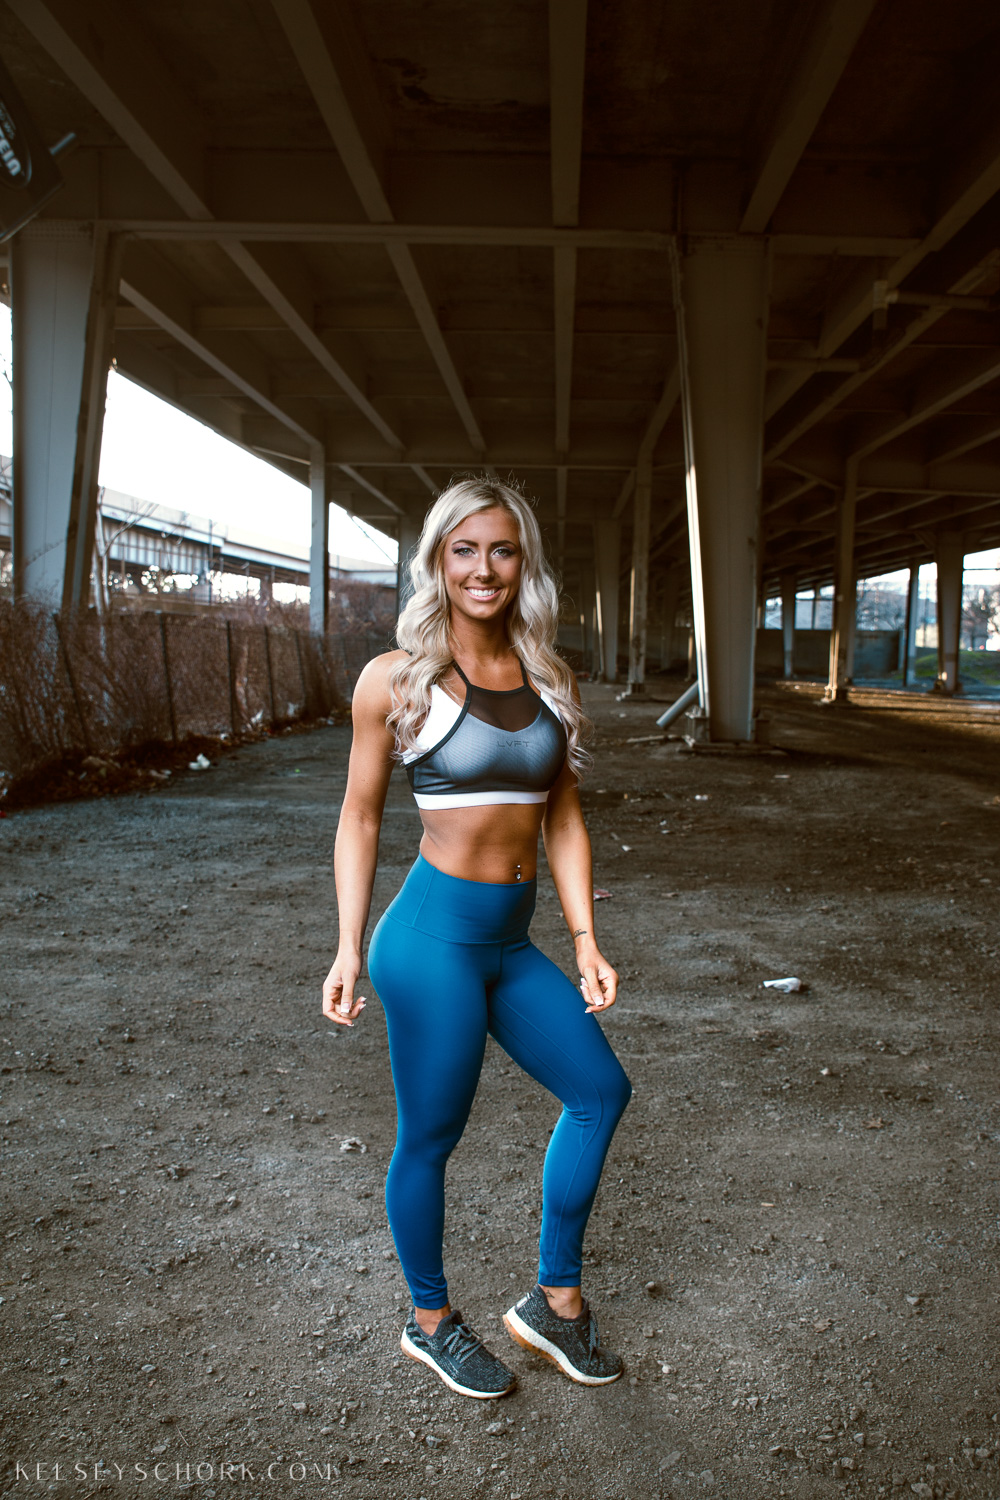 Erin_fitness_photoshoot-11.jpg